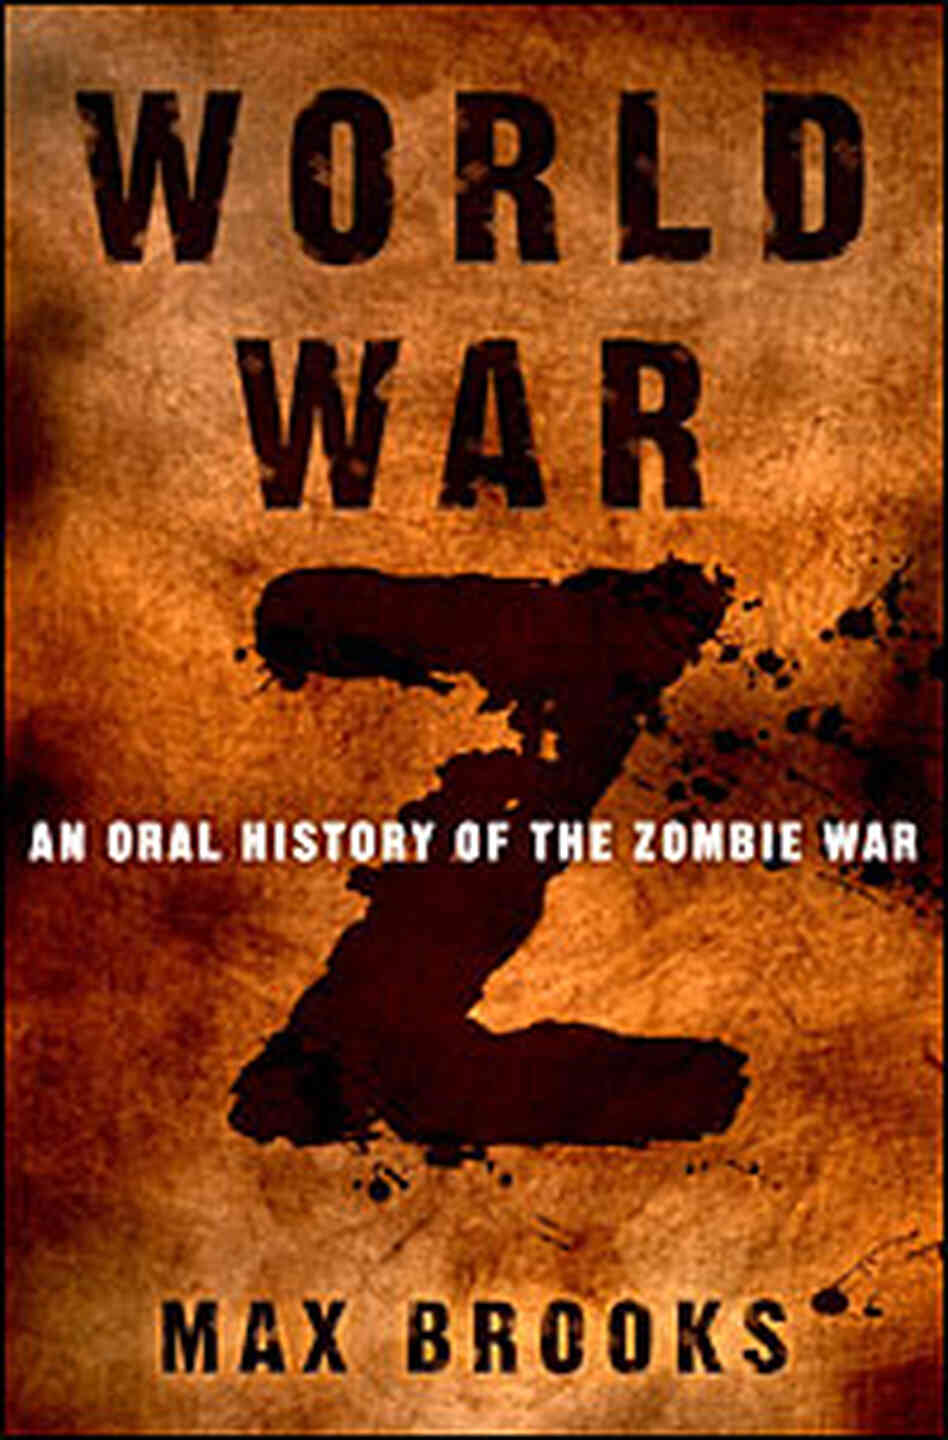 http://media.npr.org/programs/totn/features/2006/09/zombies/WorldWarZ_200-s6-c30.jpg?t=1248631307